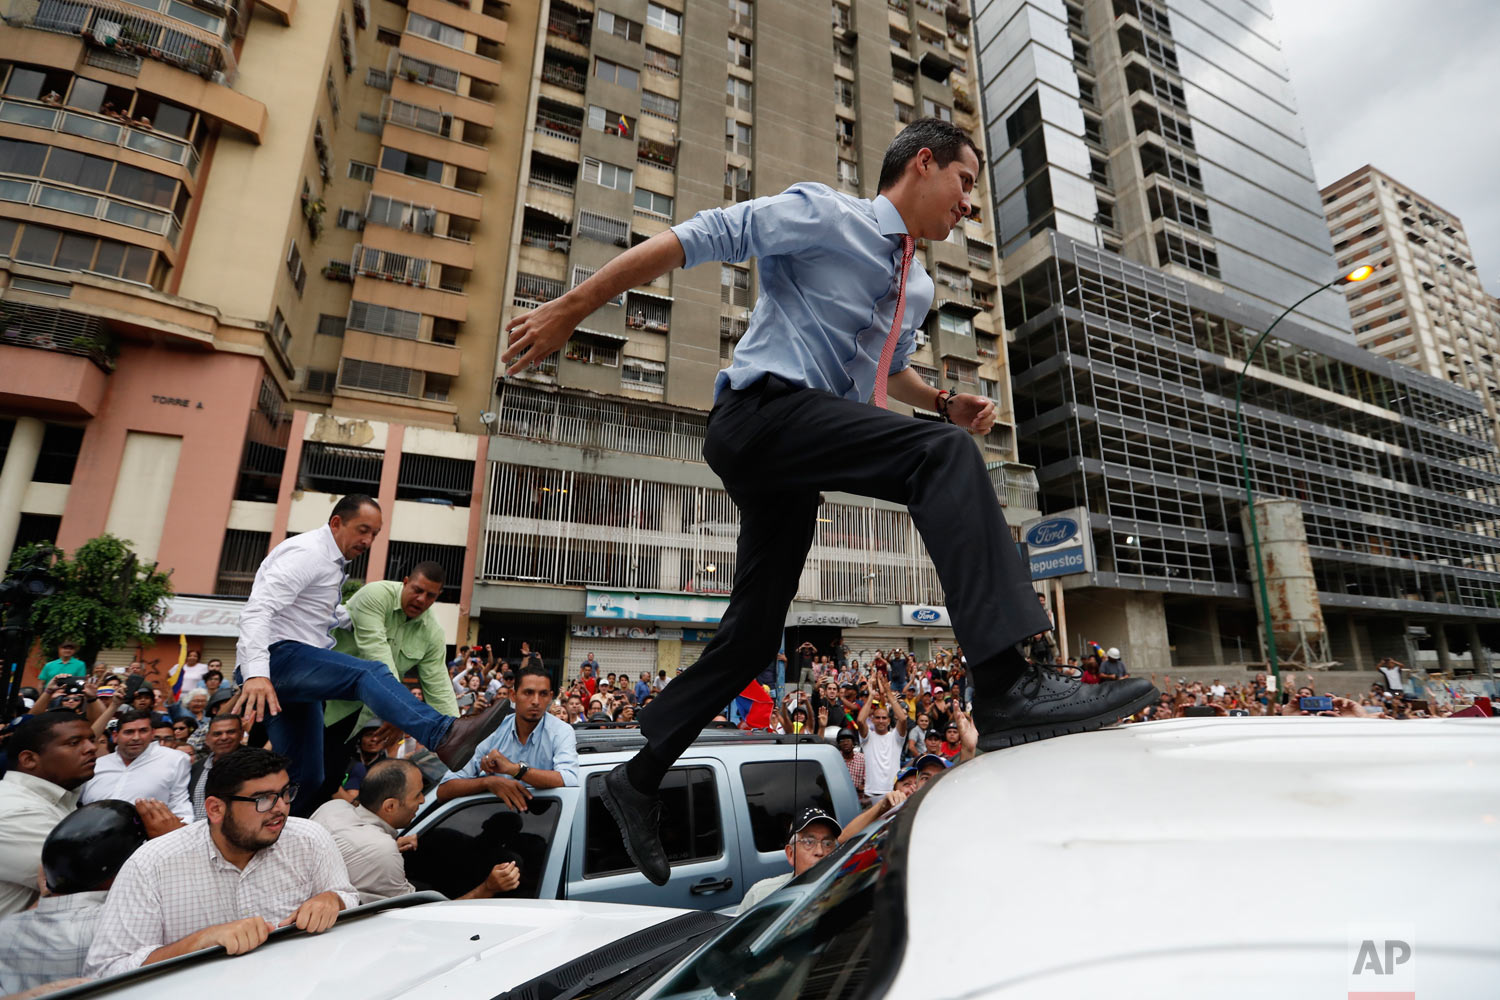 In this March 12, 2019 photo, National Assembly President Juan Guaido, who declared himself interim president of Venezuela, leaps on to a vehicle to speak to supporters as he visits different points of anti-government protest in Caracas, Venezuela.  (AP Photo/Eduardo Verdugo)